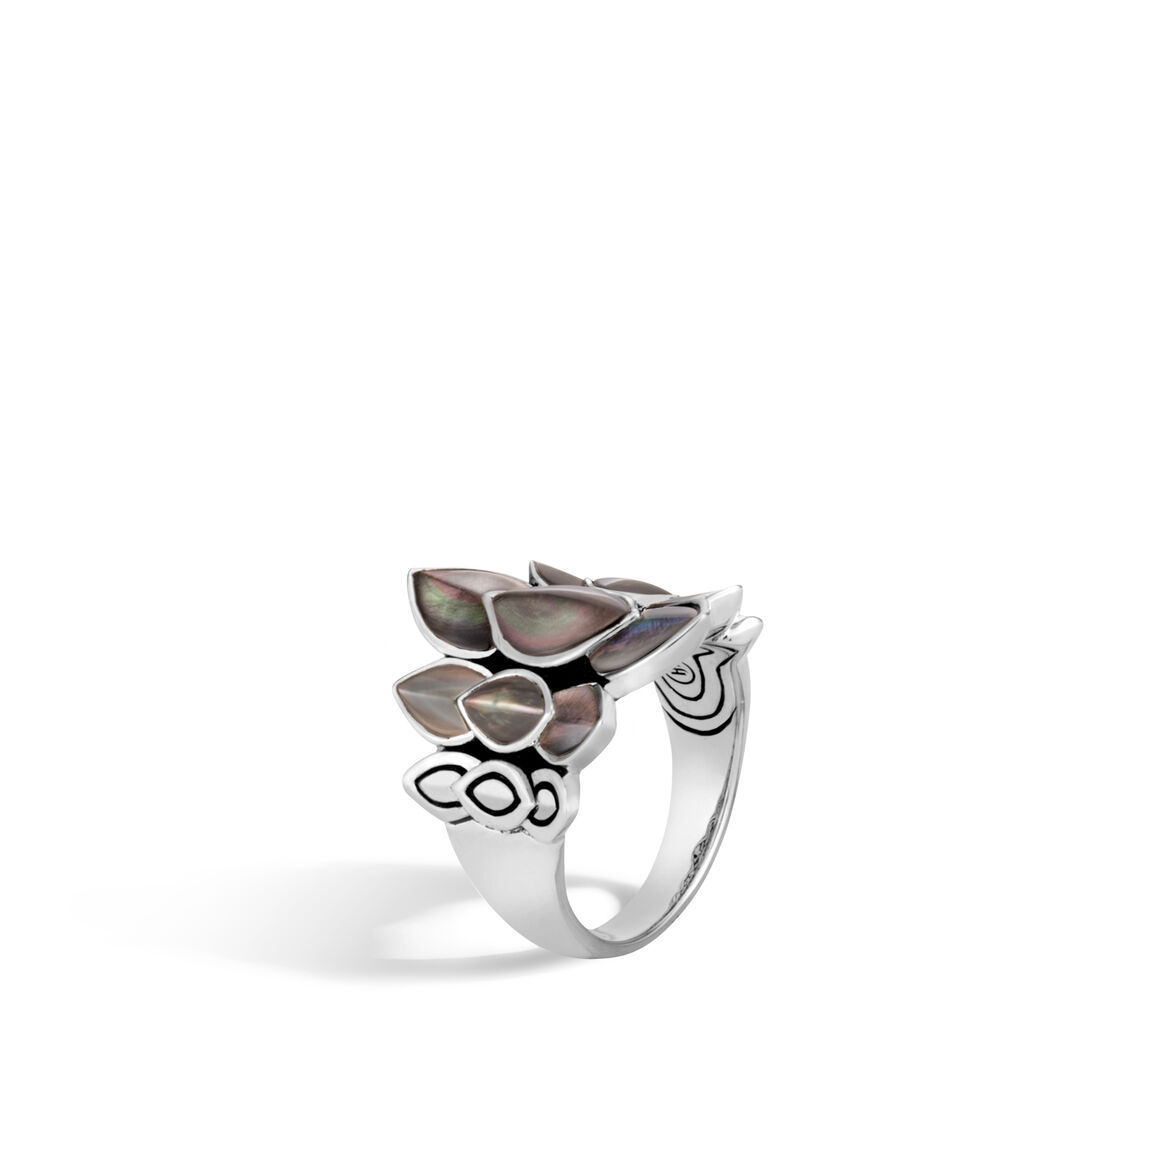 Legends Naga Saddle Ring in Silver with Gemstone